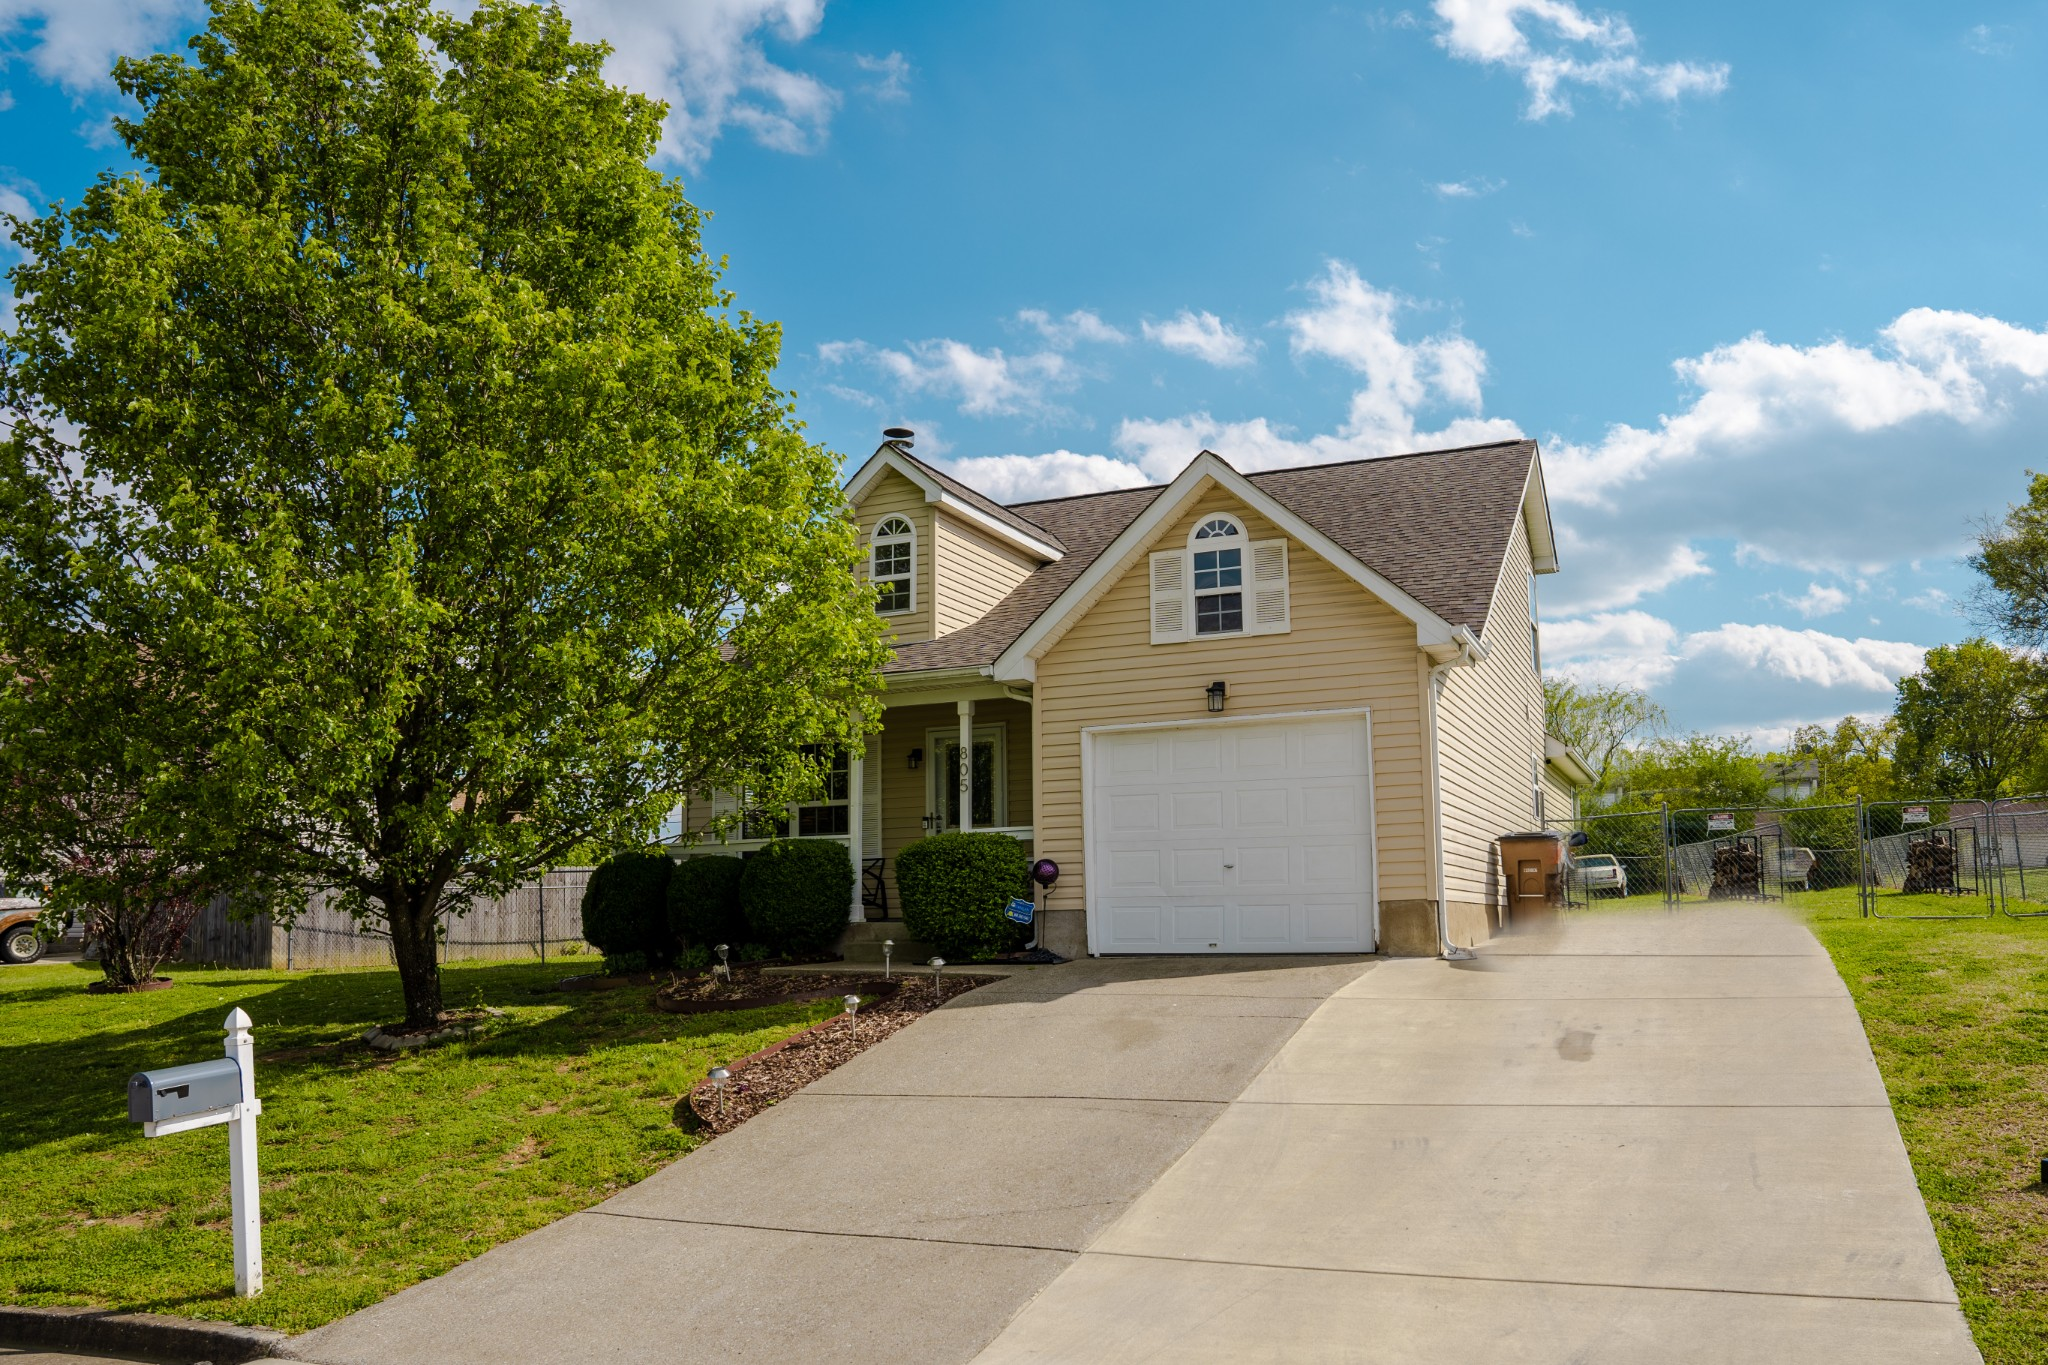 805 Stone Flower Ct Property Photo - Antioch, TN real estate listing